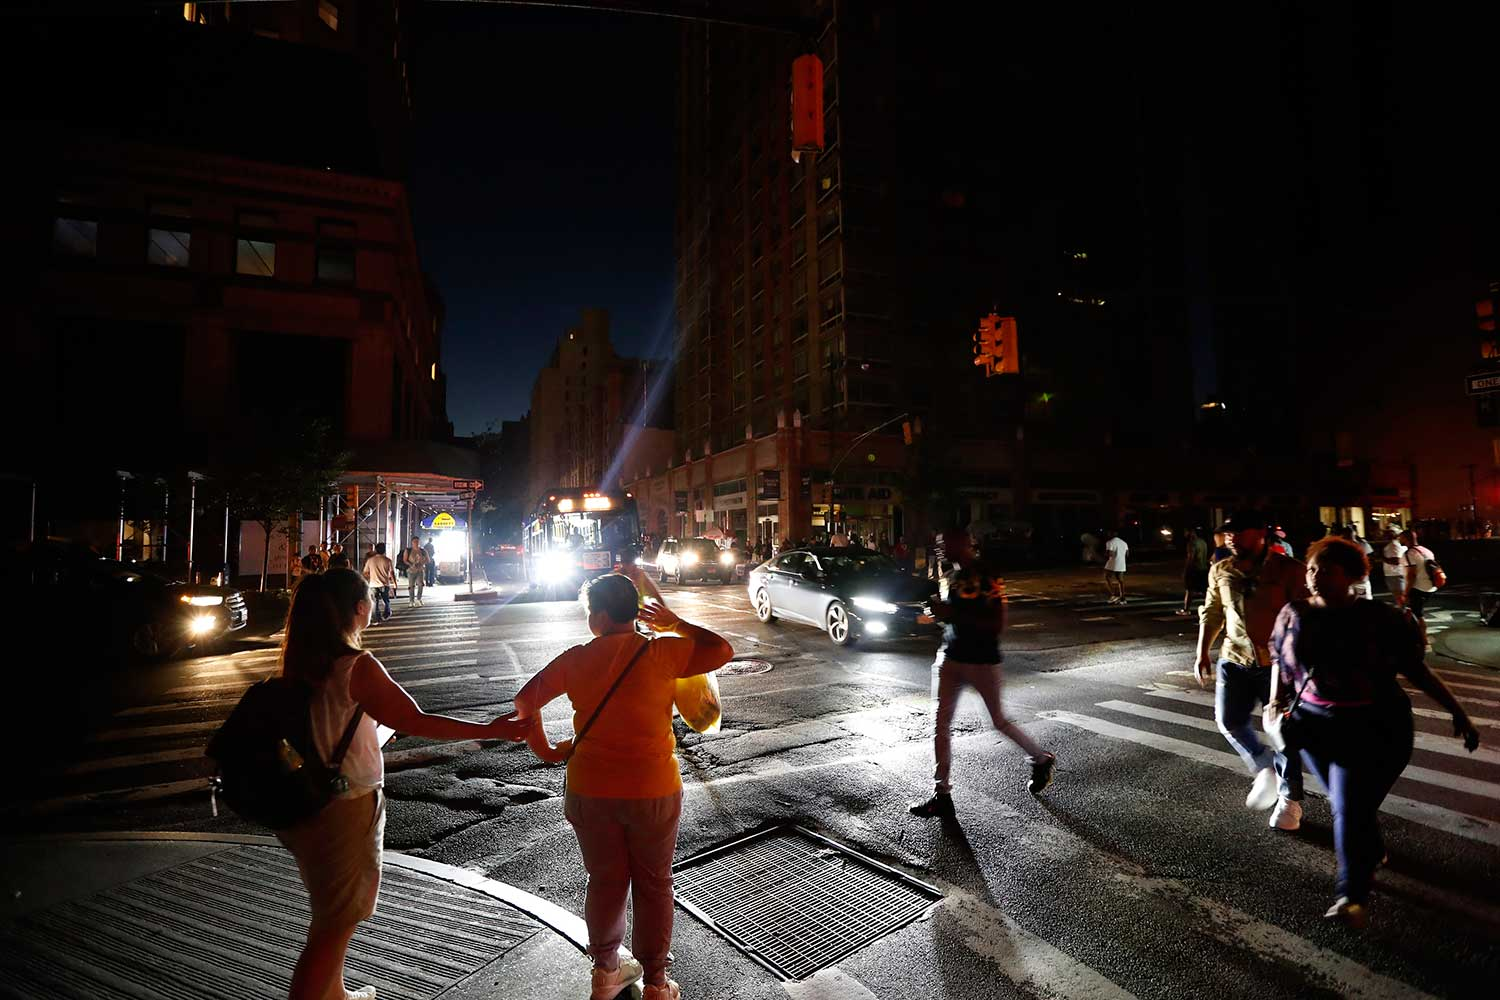 Pedestrians cross a dark street during a power outage on Saturday in New York. (AP photo)